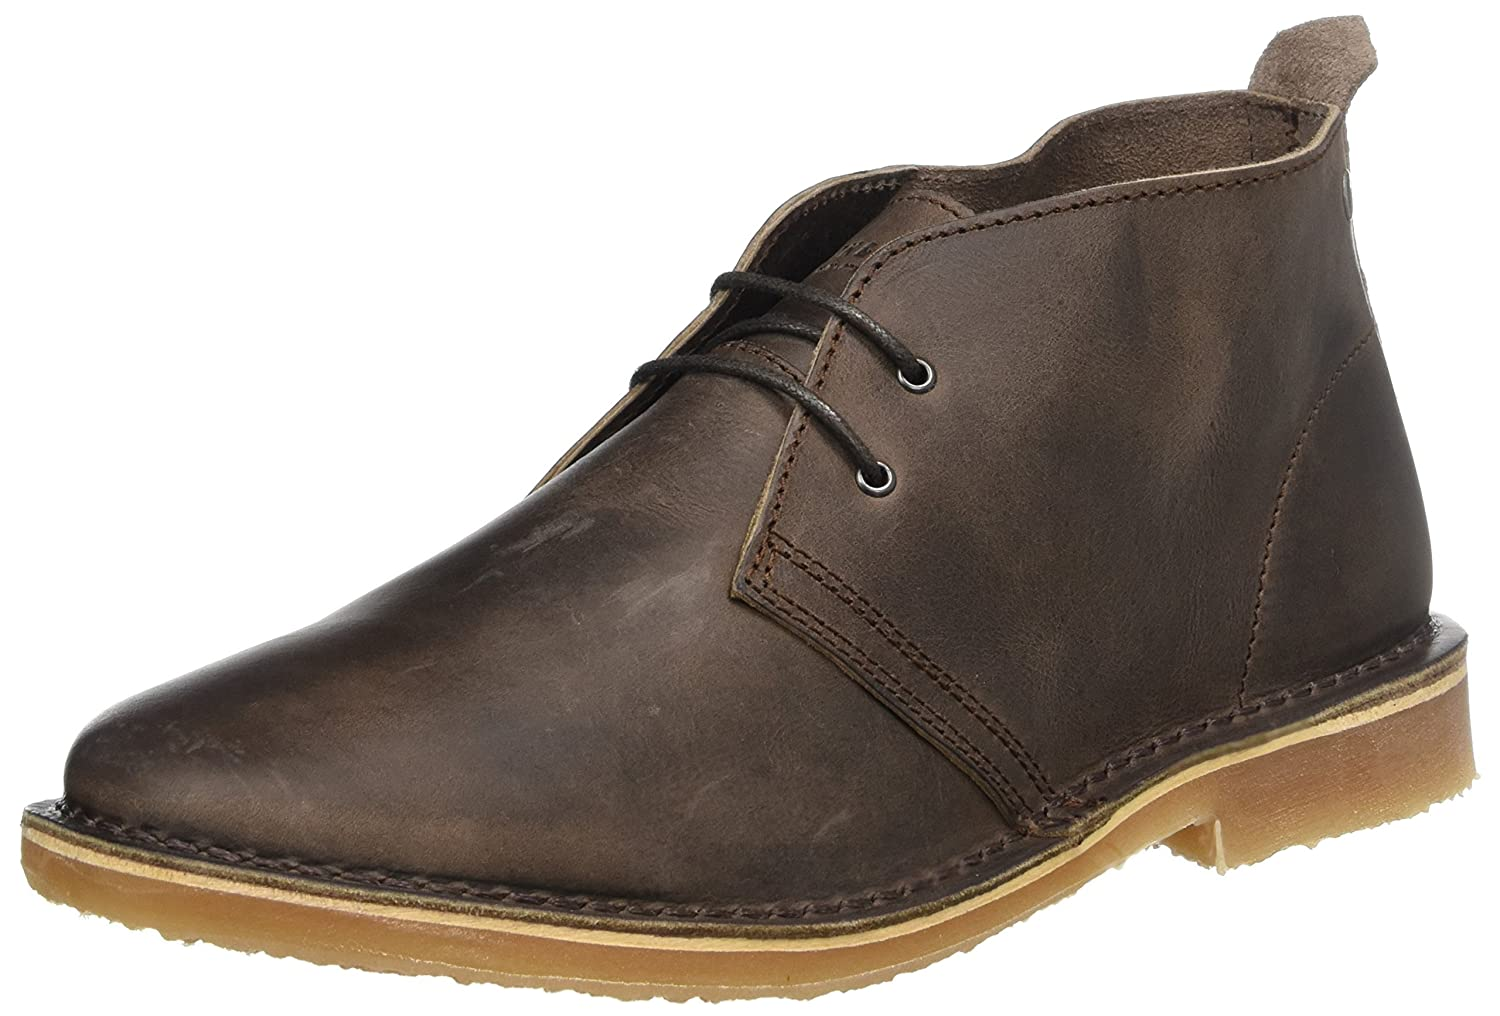 Jack & Jones Jfwgobi Leather Chocolate Brown, Botas Desert para Hombre